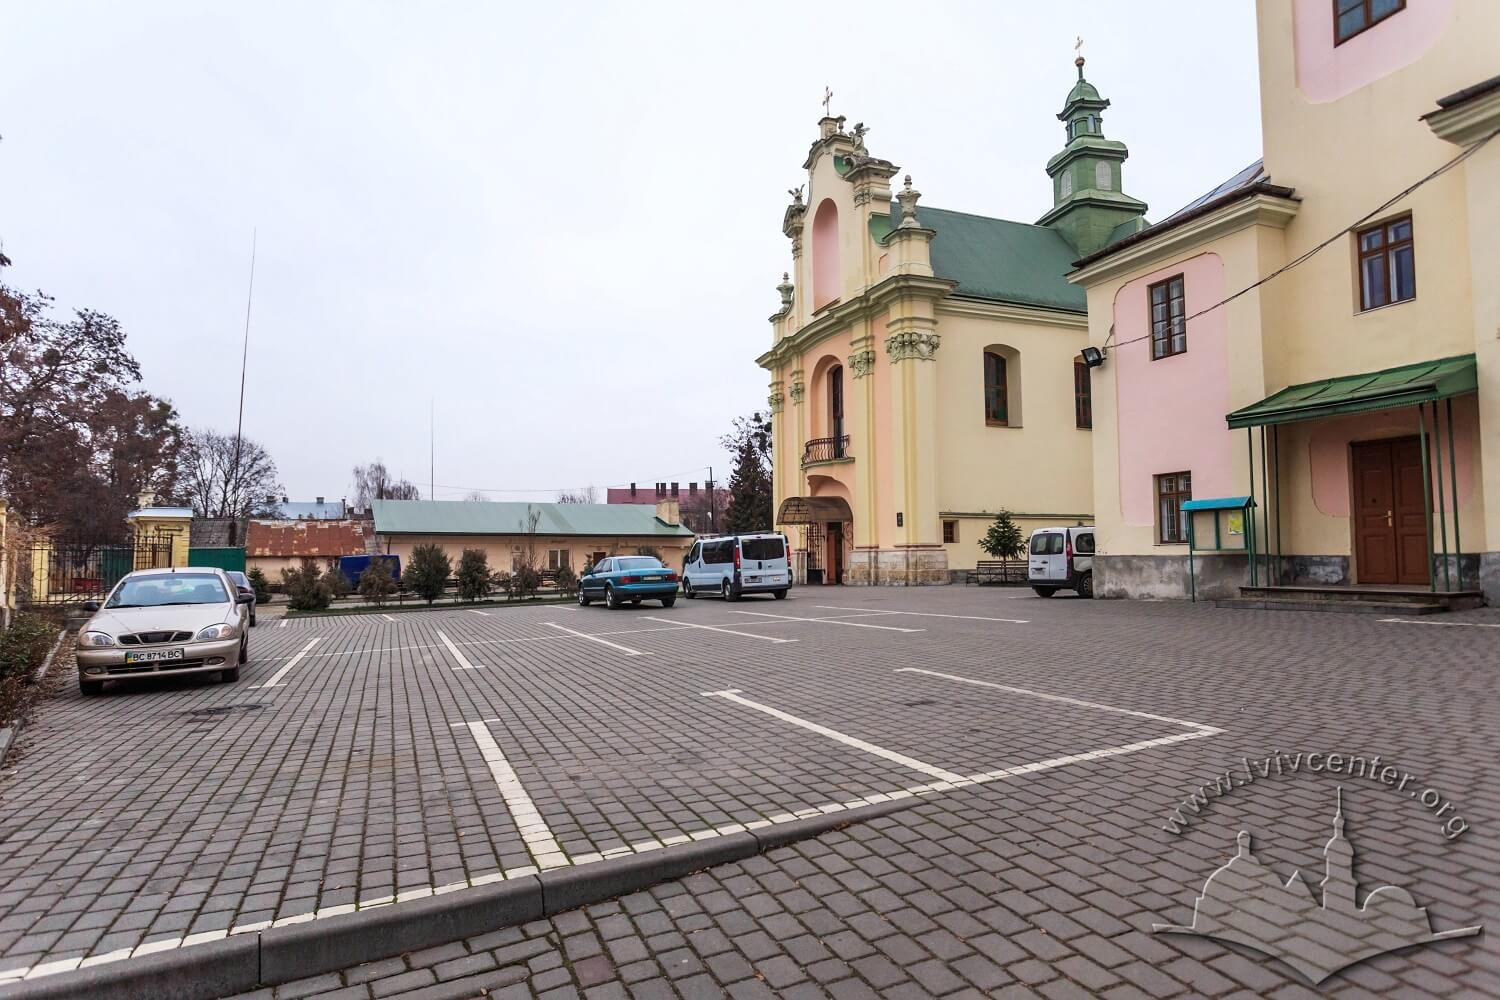 Vul. Zhovkivska, 8. Courtyard with parking lots in front of the prayer hall/Photo courtesy of Nazarii Parkhomyk, 2015